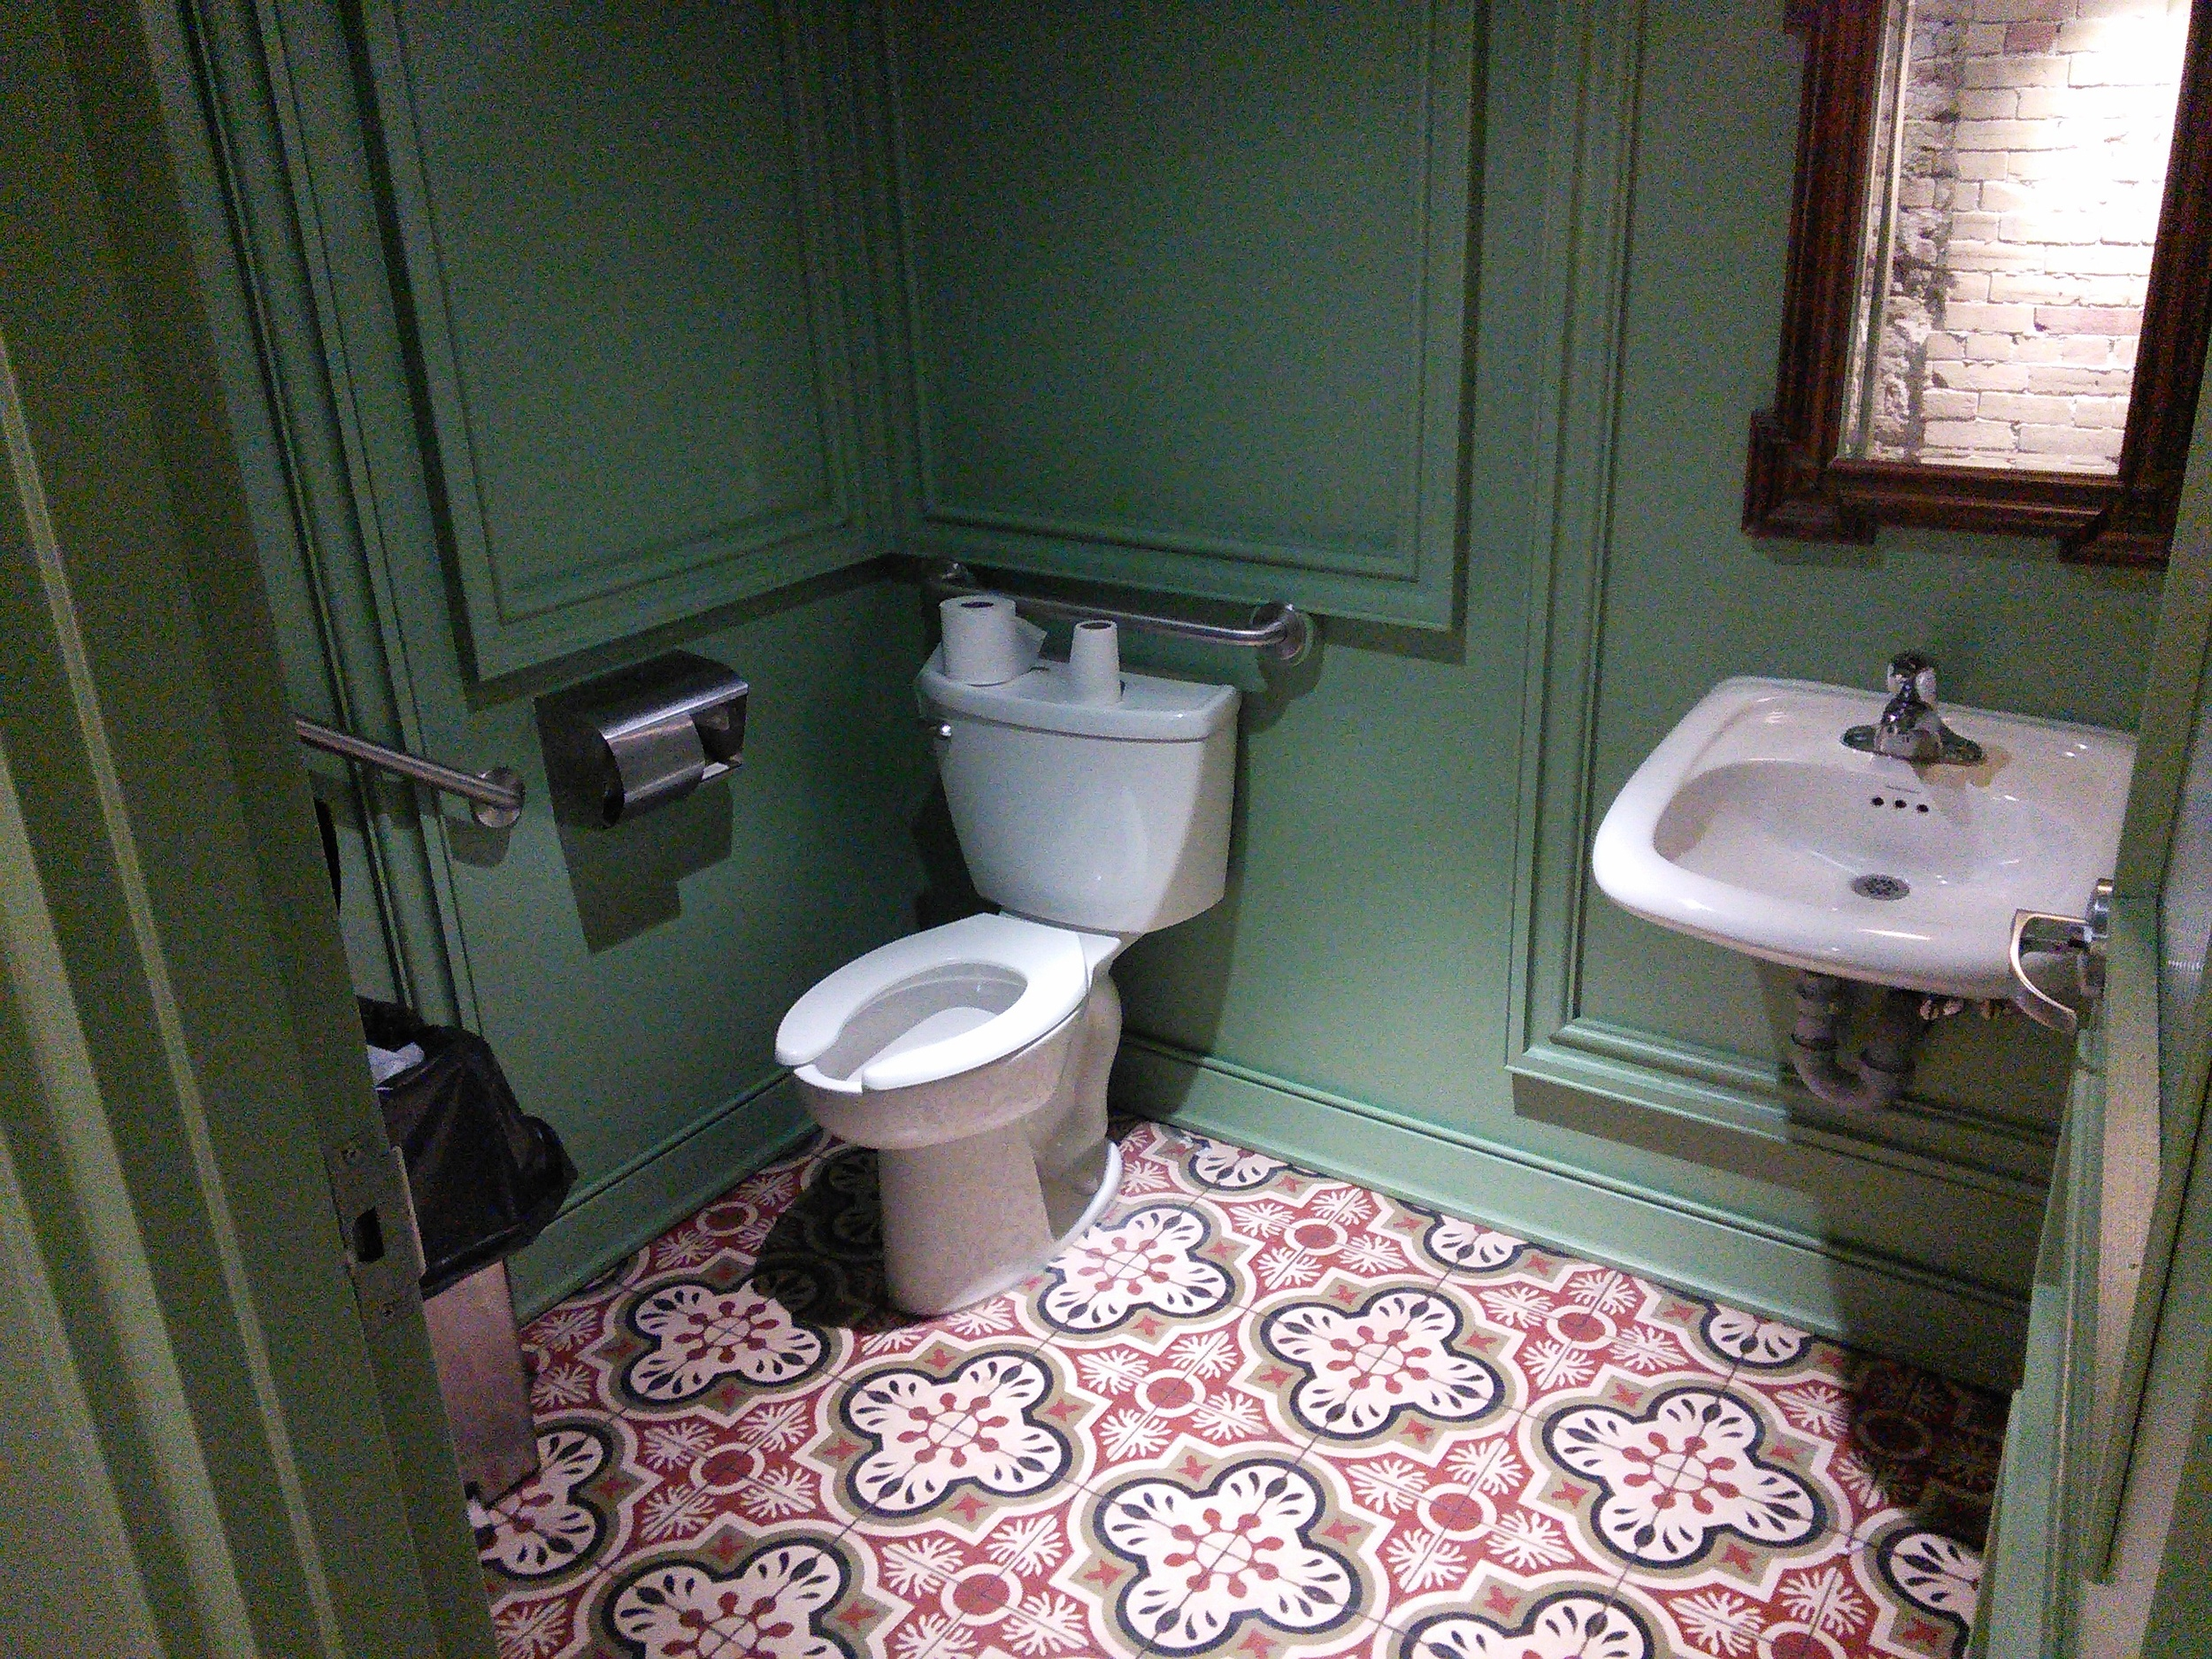 Picture of the accessible bathroom stall.